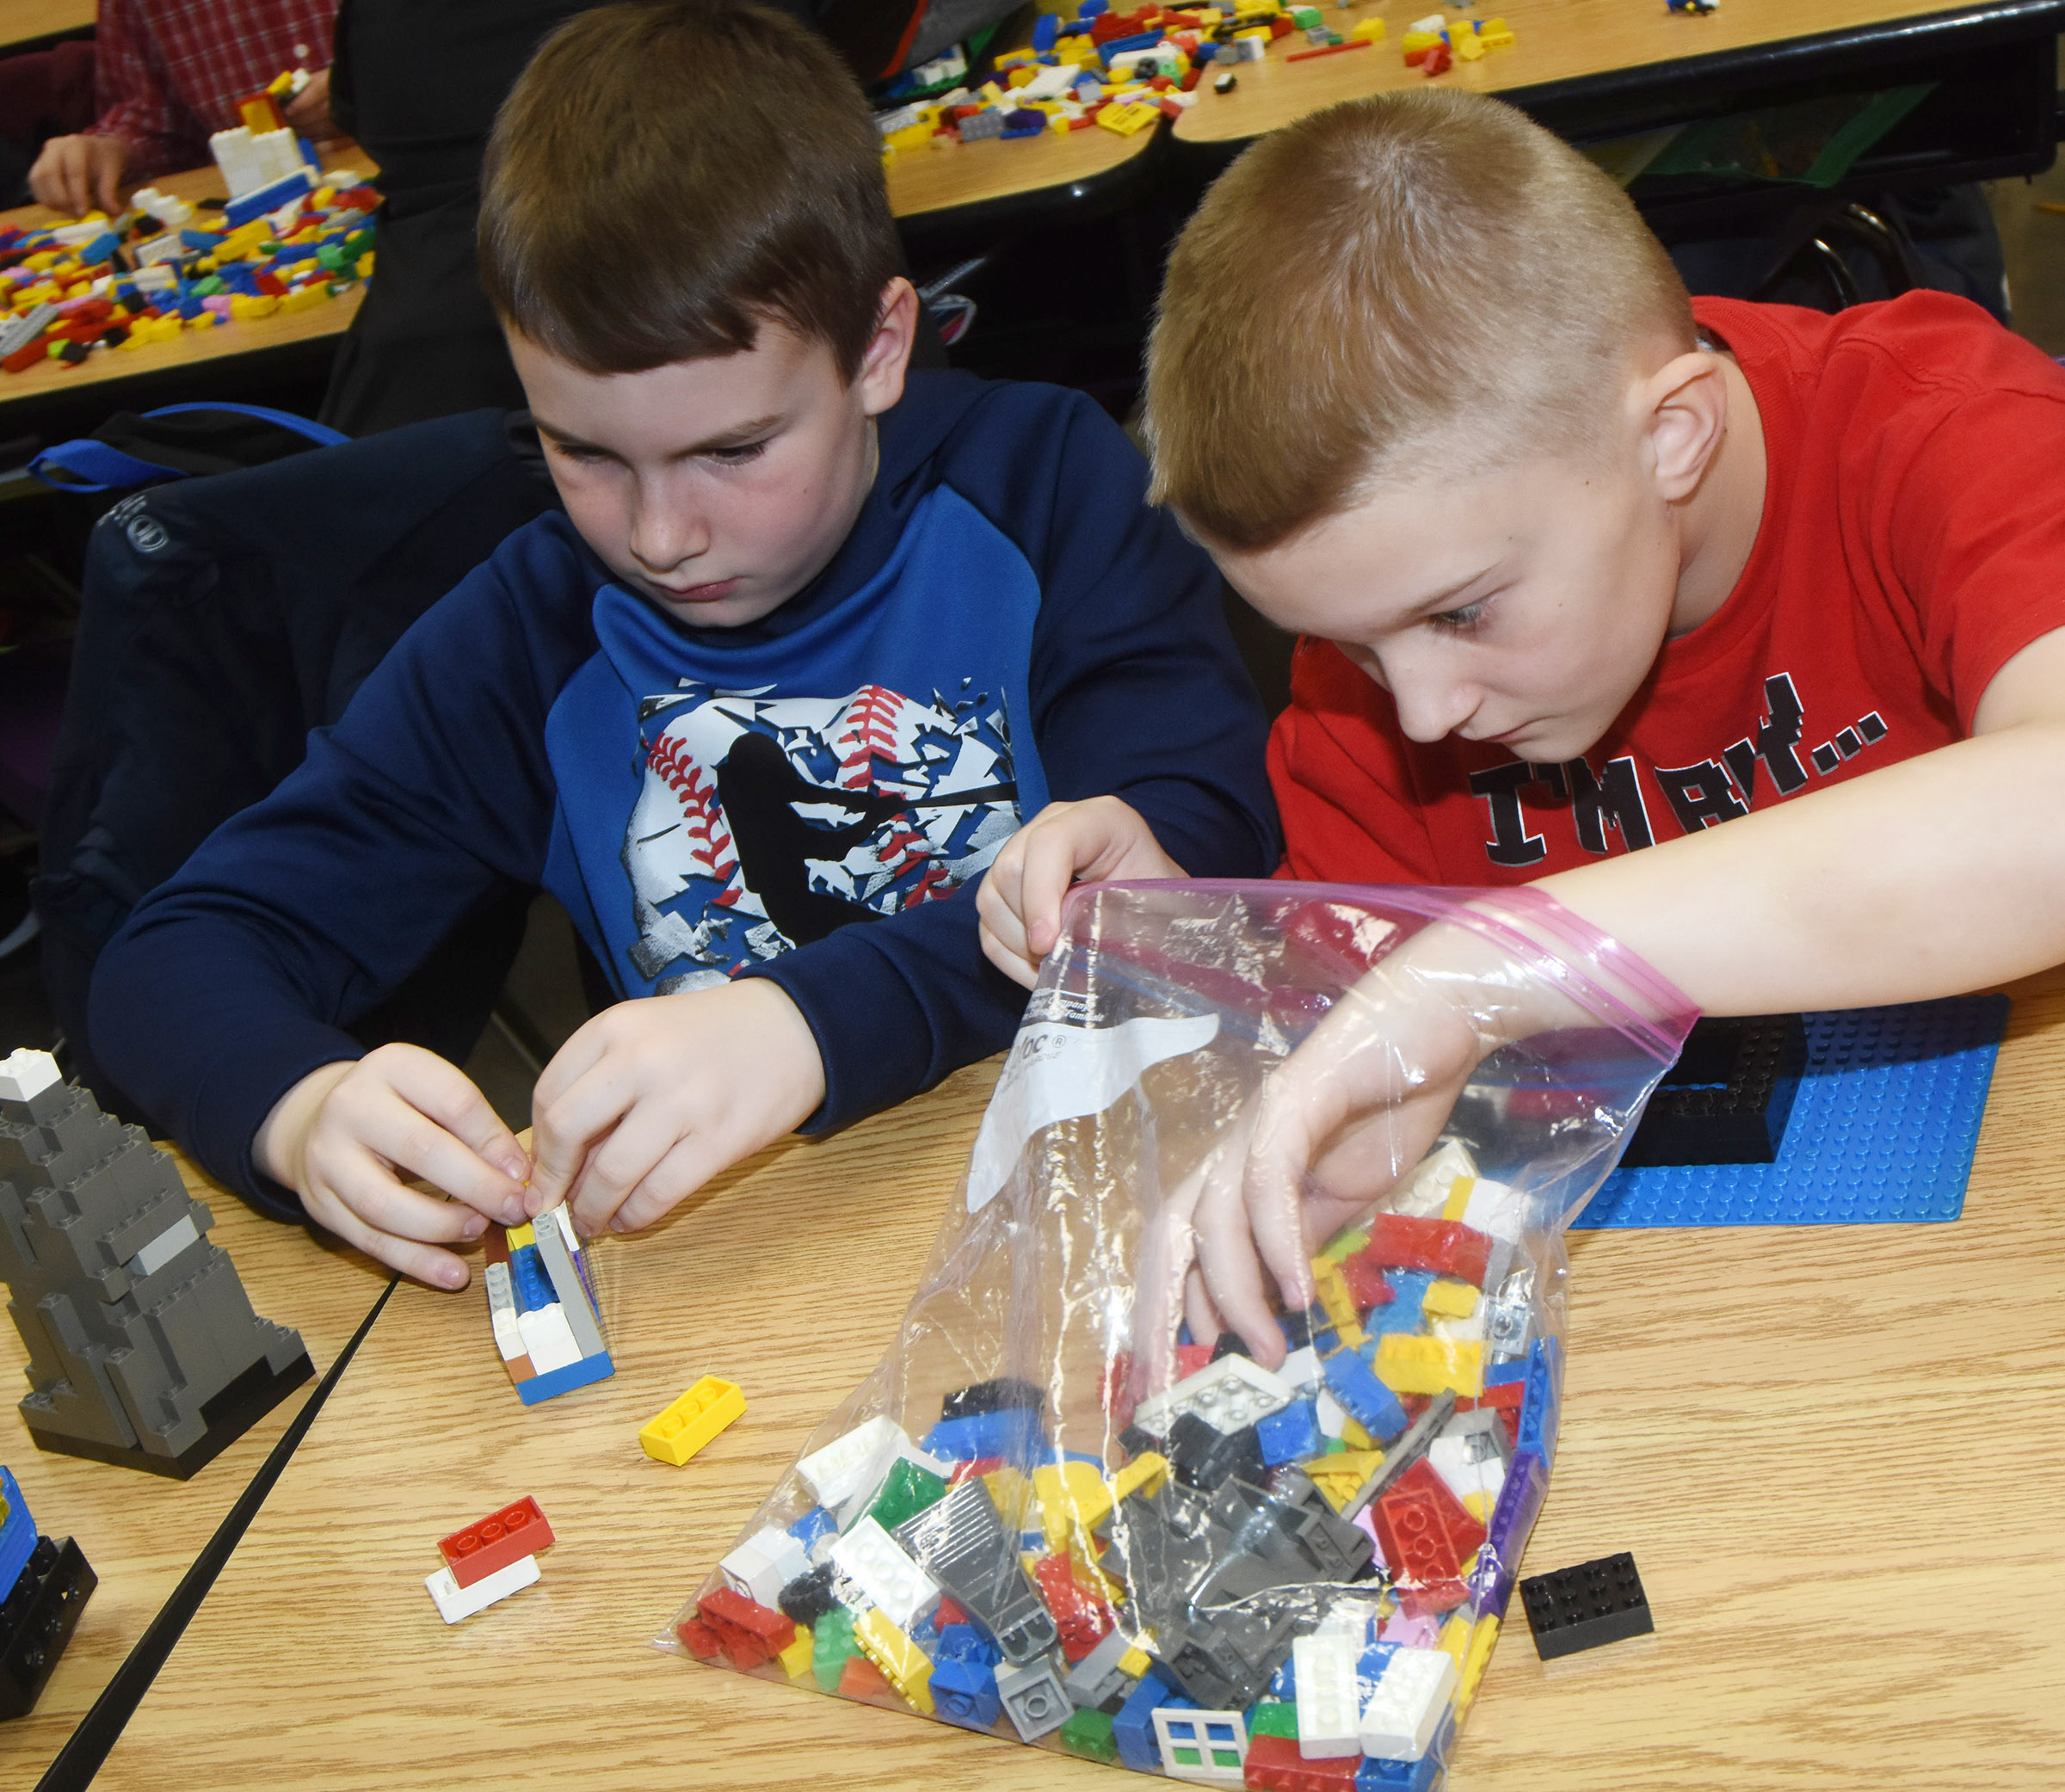 CES fourth-graders Stephen Green, at left, and Camren Skaggs build with Legos.